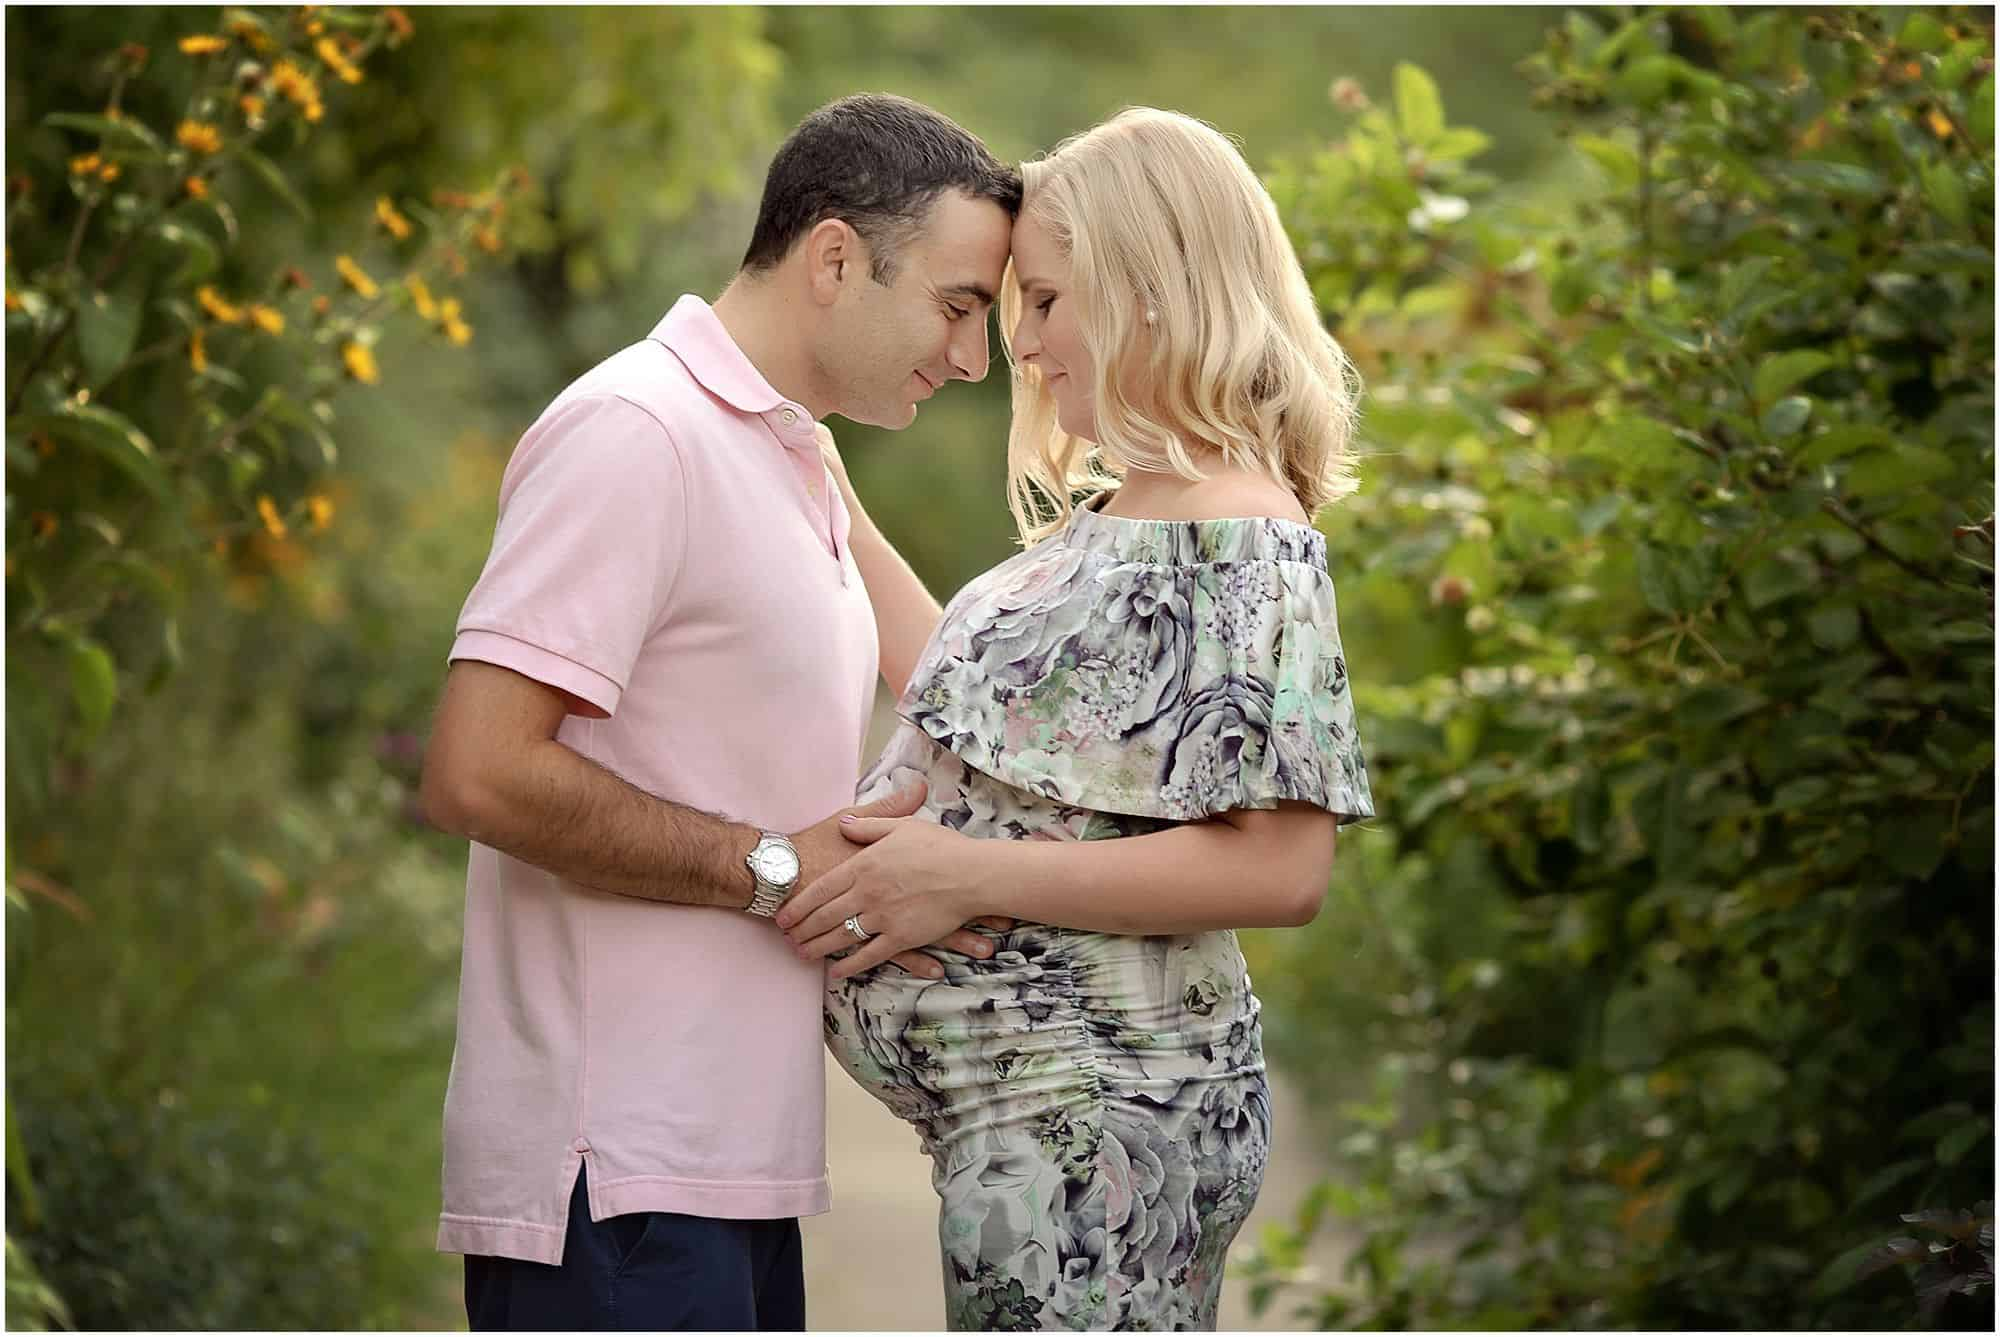 cincinnati maternity photographer at ault park with Samantha sinchek gorgeous sunset maternity pictures